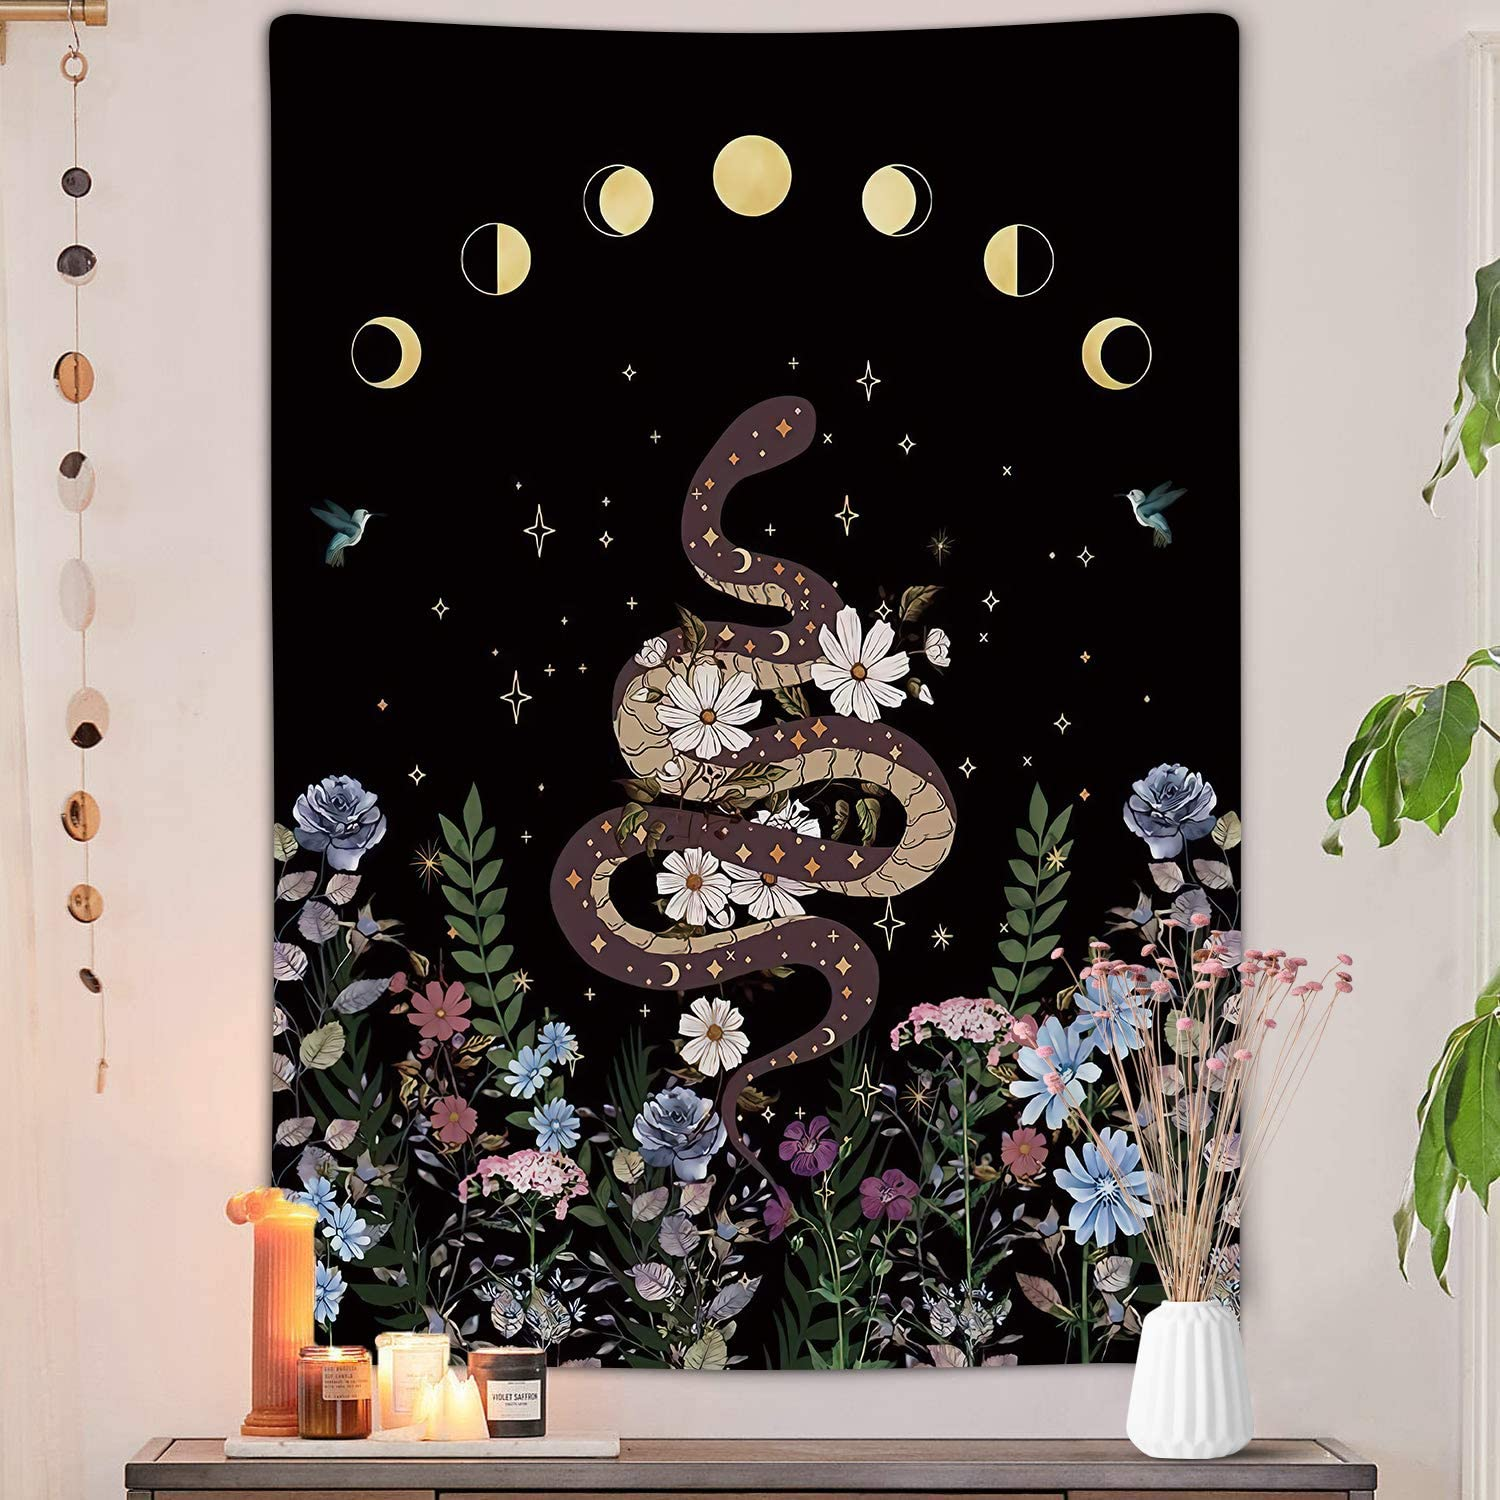 Trippy Floral Moon Vertical Tapestry, Aesthetic Flower Black Witchy Tarot Decor Tapestry Wall Hanging for Bedroom, Nature Woman Tapestries Poster Blanket College Dorm Home Decor (Snake, 36W X 48H)